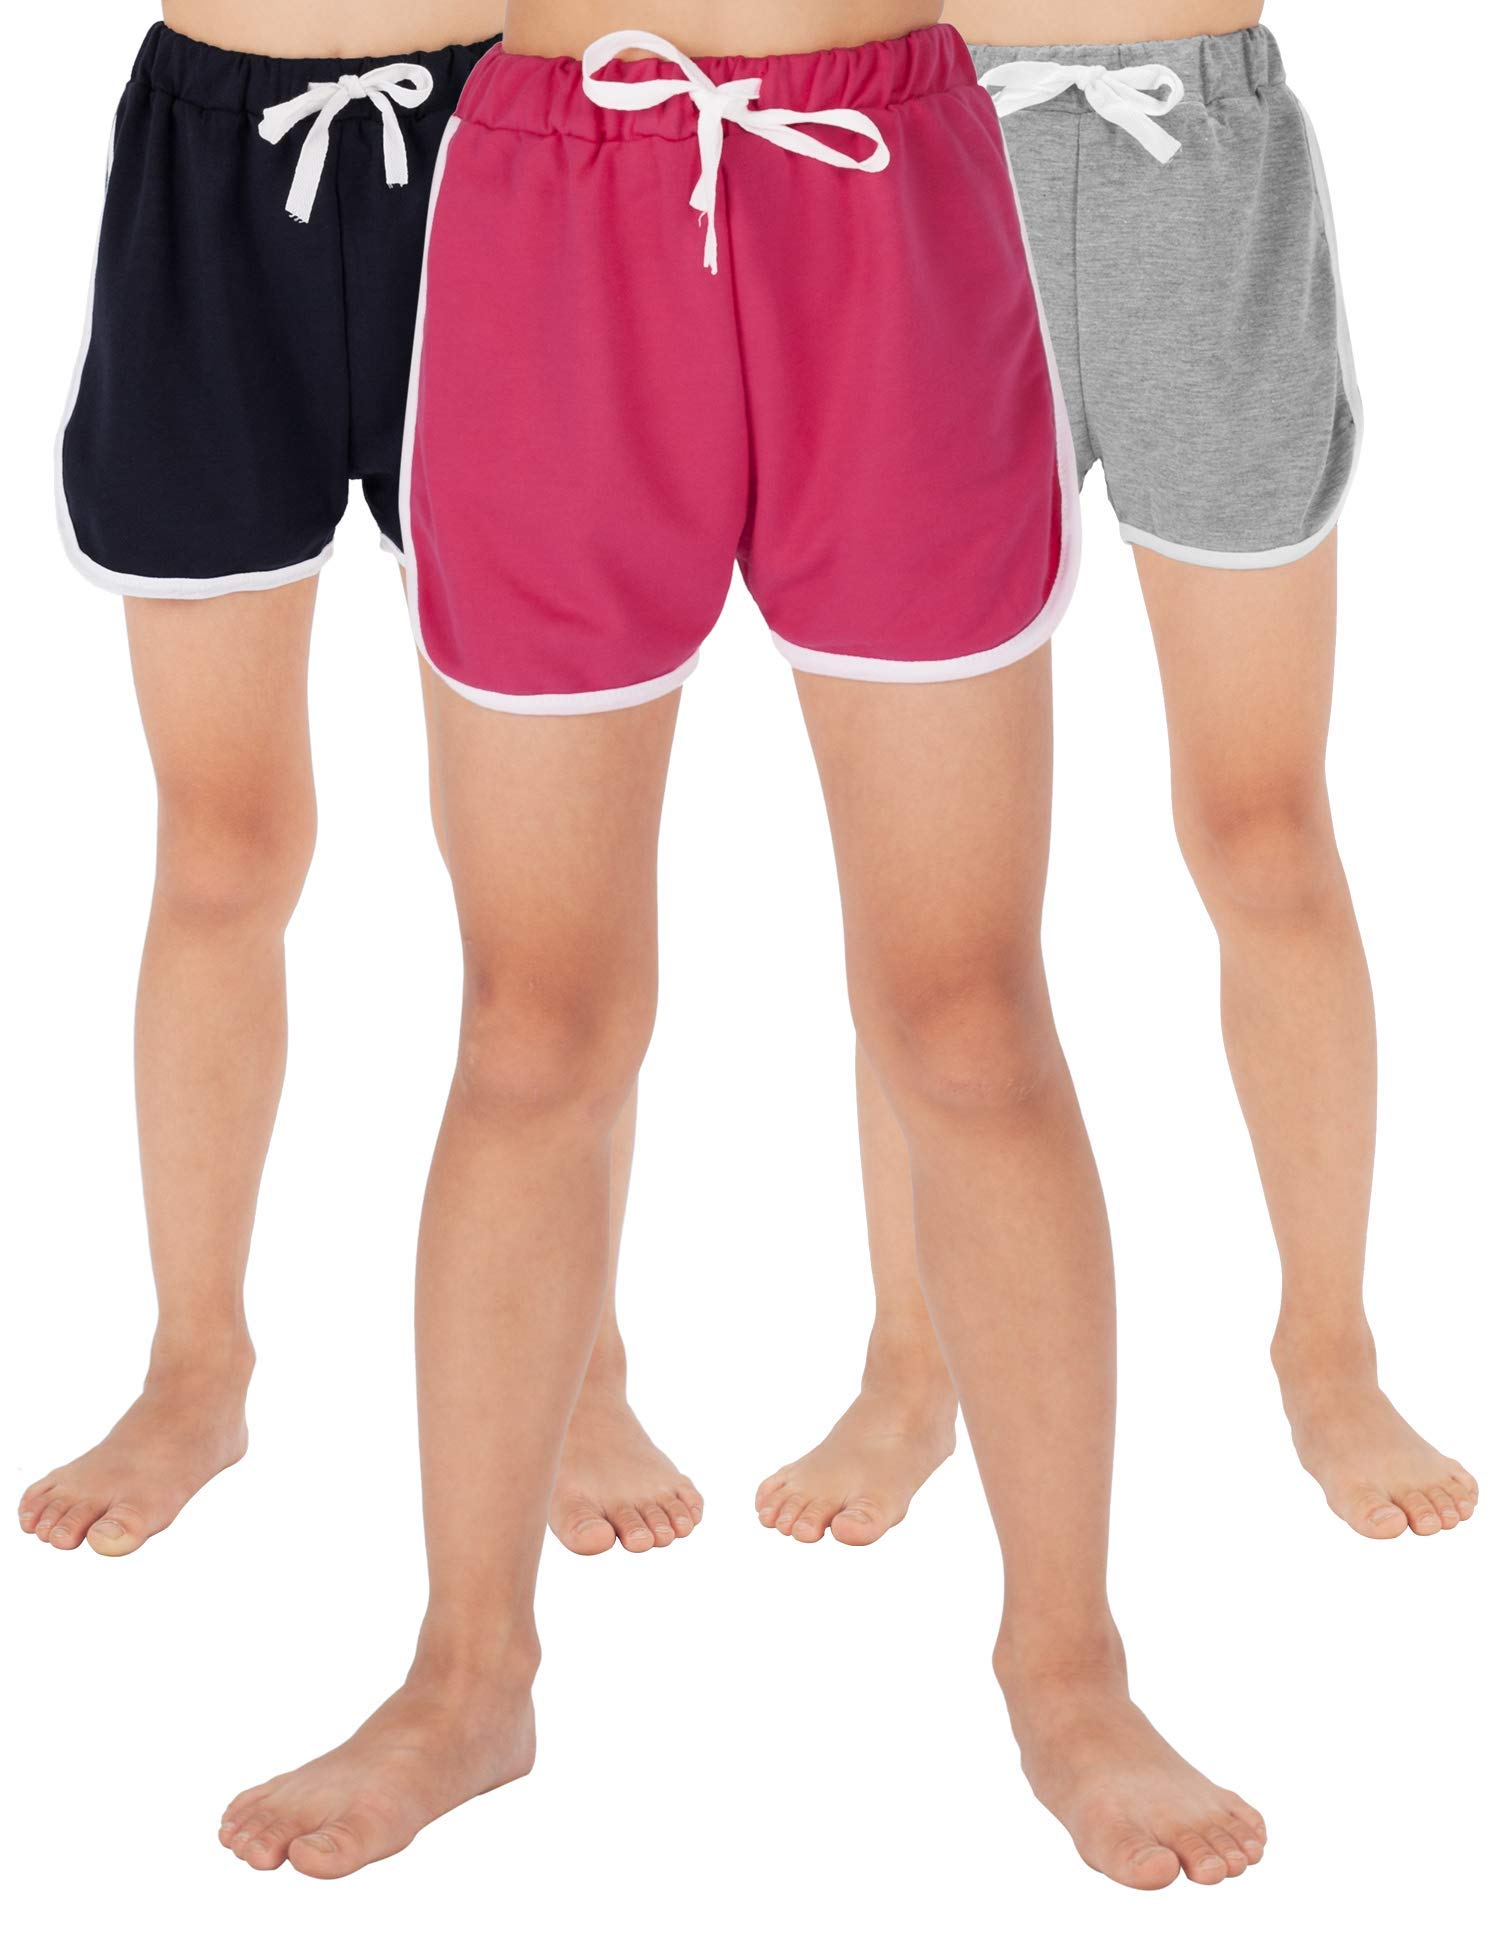 WEWINK PLUS Girls Cotton Shorts 4-13 Years (Gray+Rose red+Navy Blue, 11-13 Years)